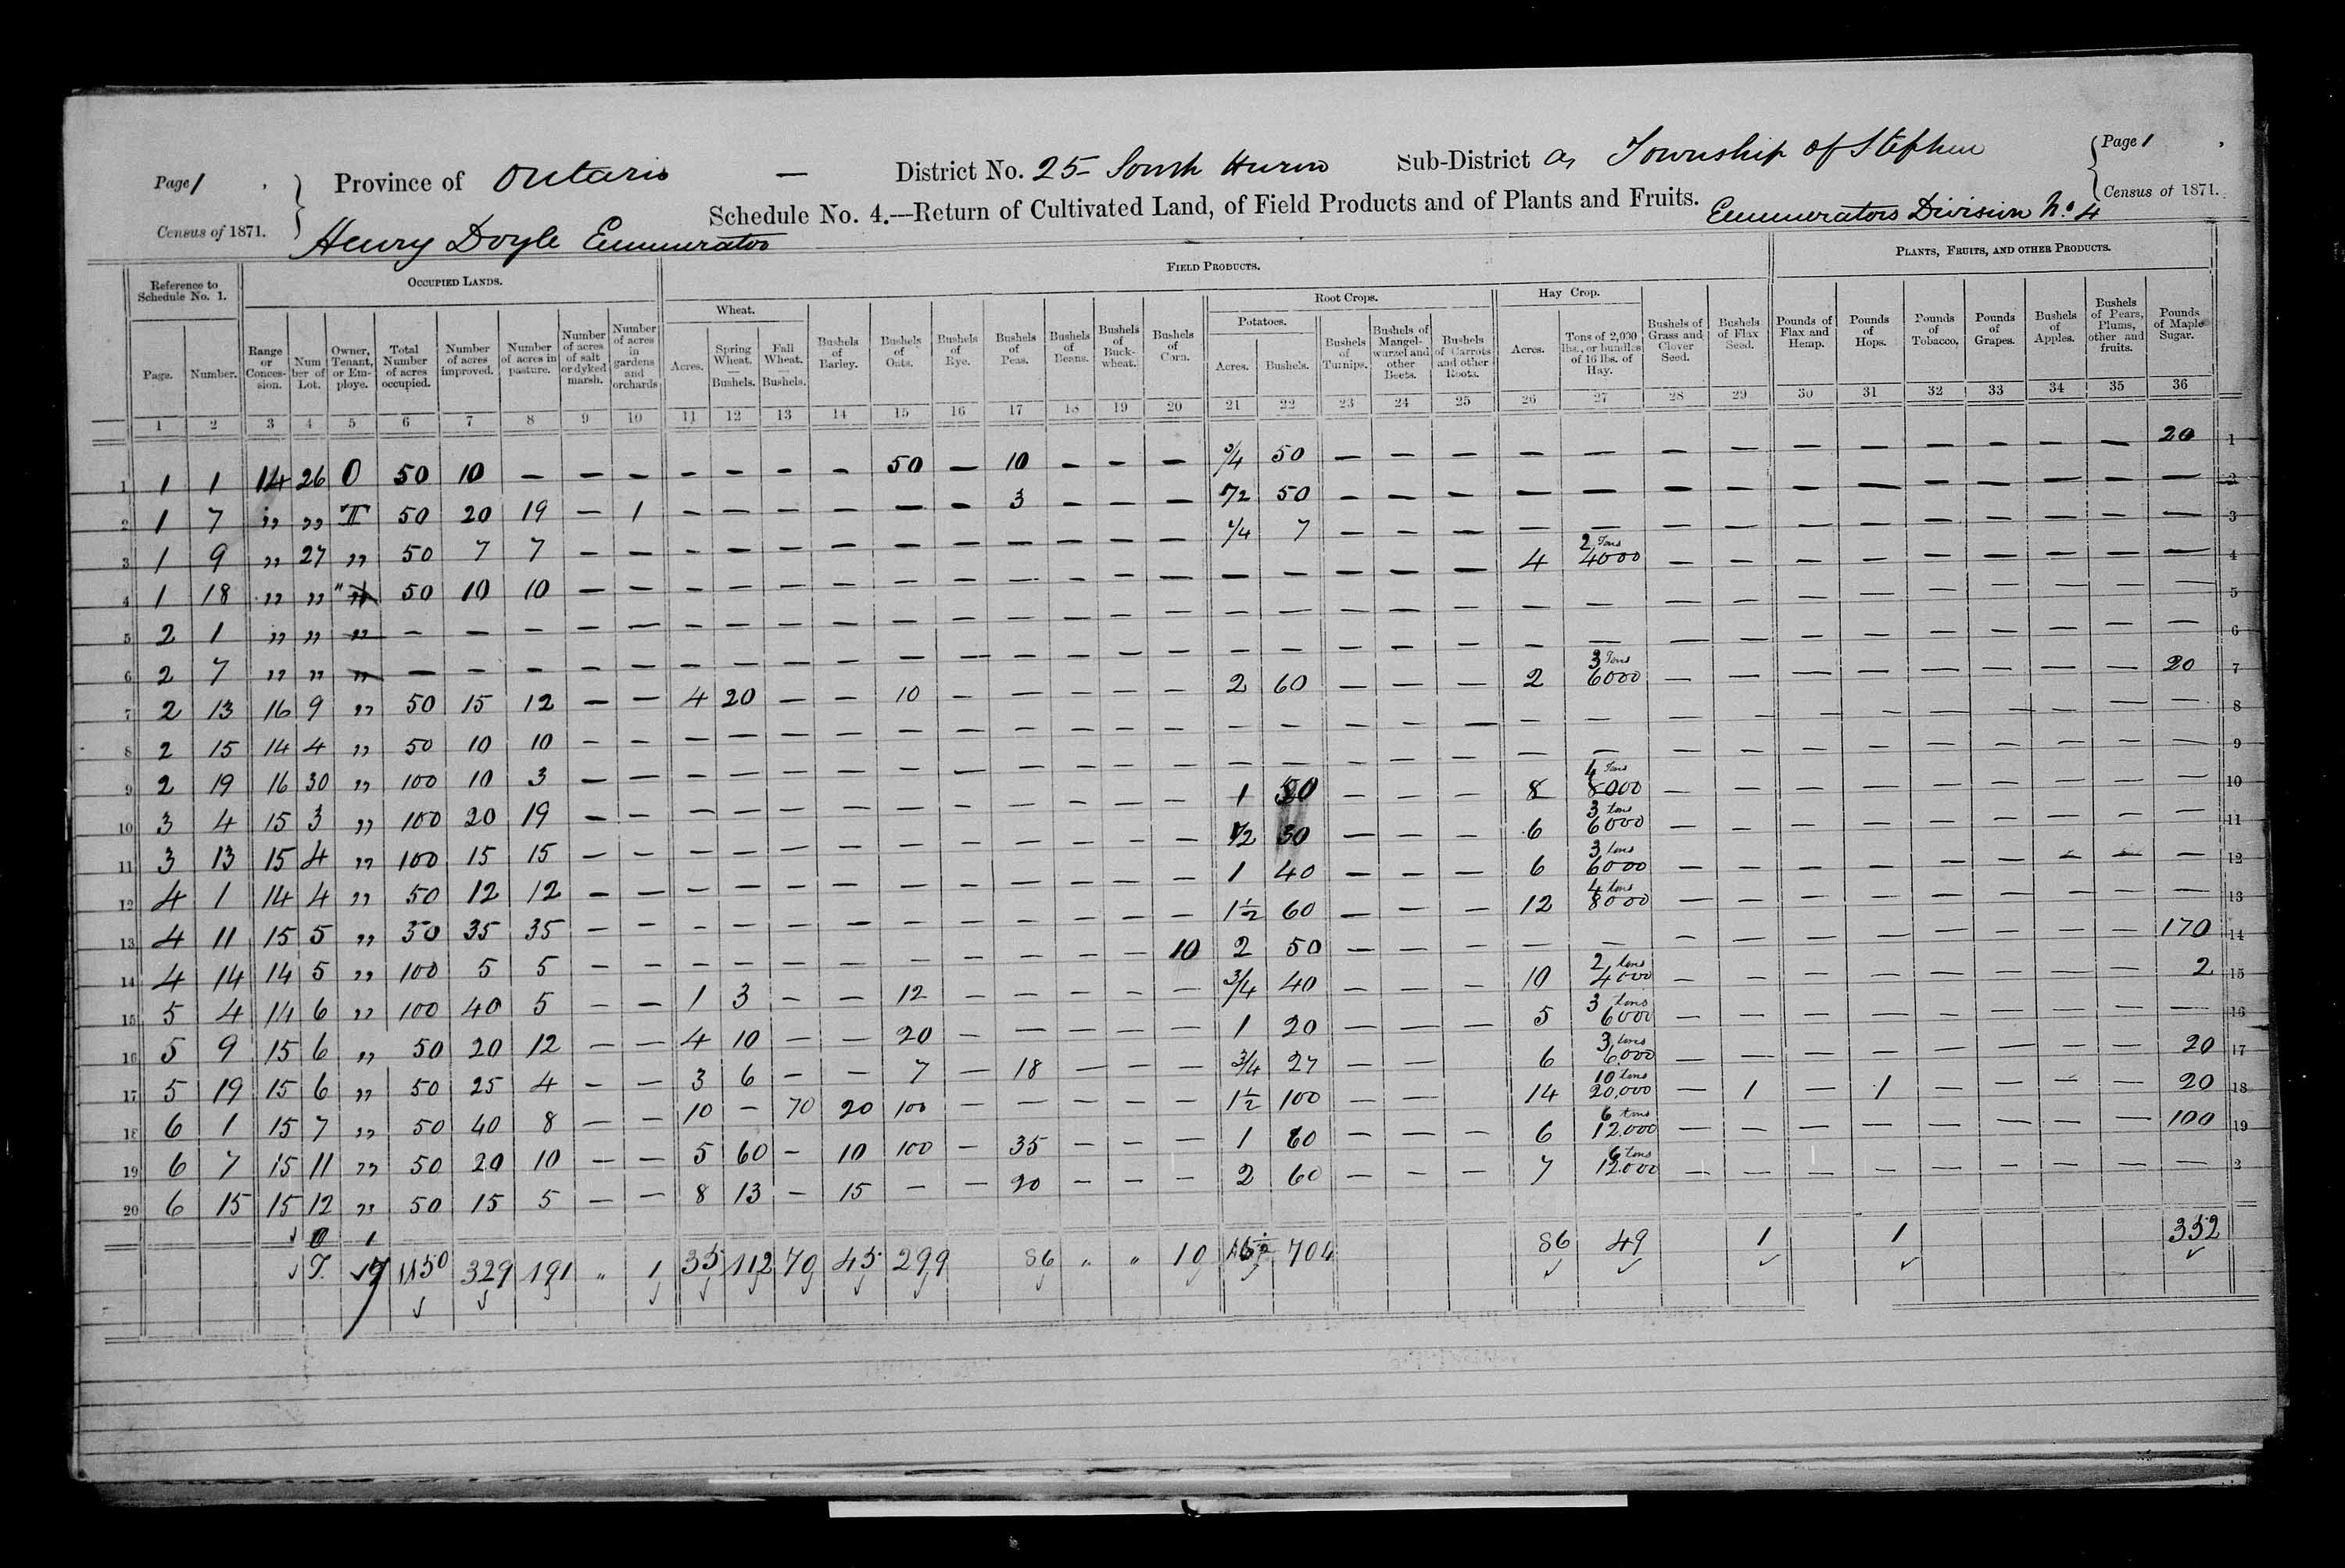 Title: Census of Canada, 1871 - Mikan Number: 142105 - Microform: c-9928